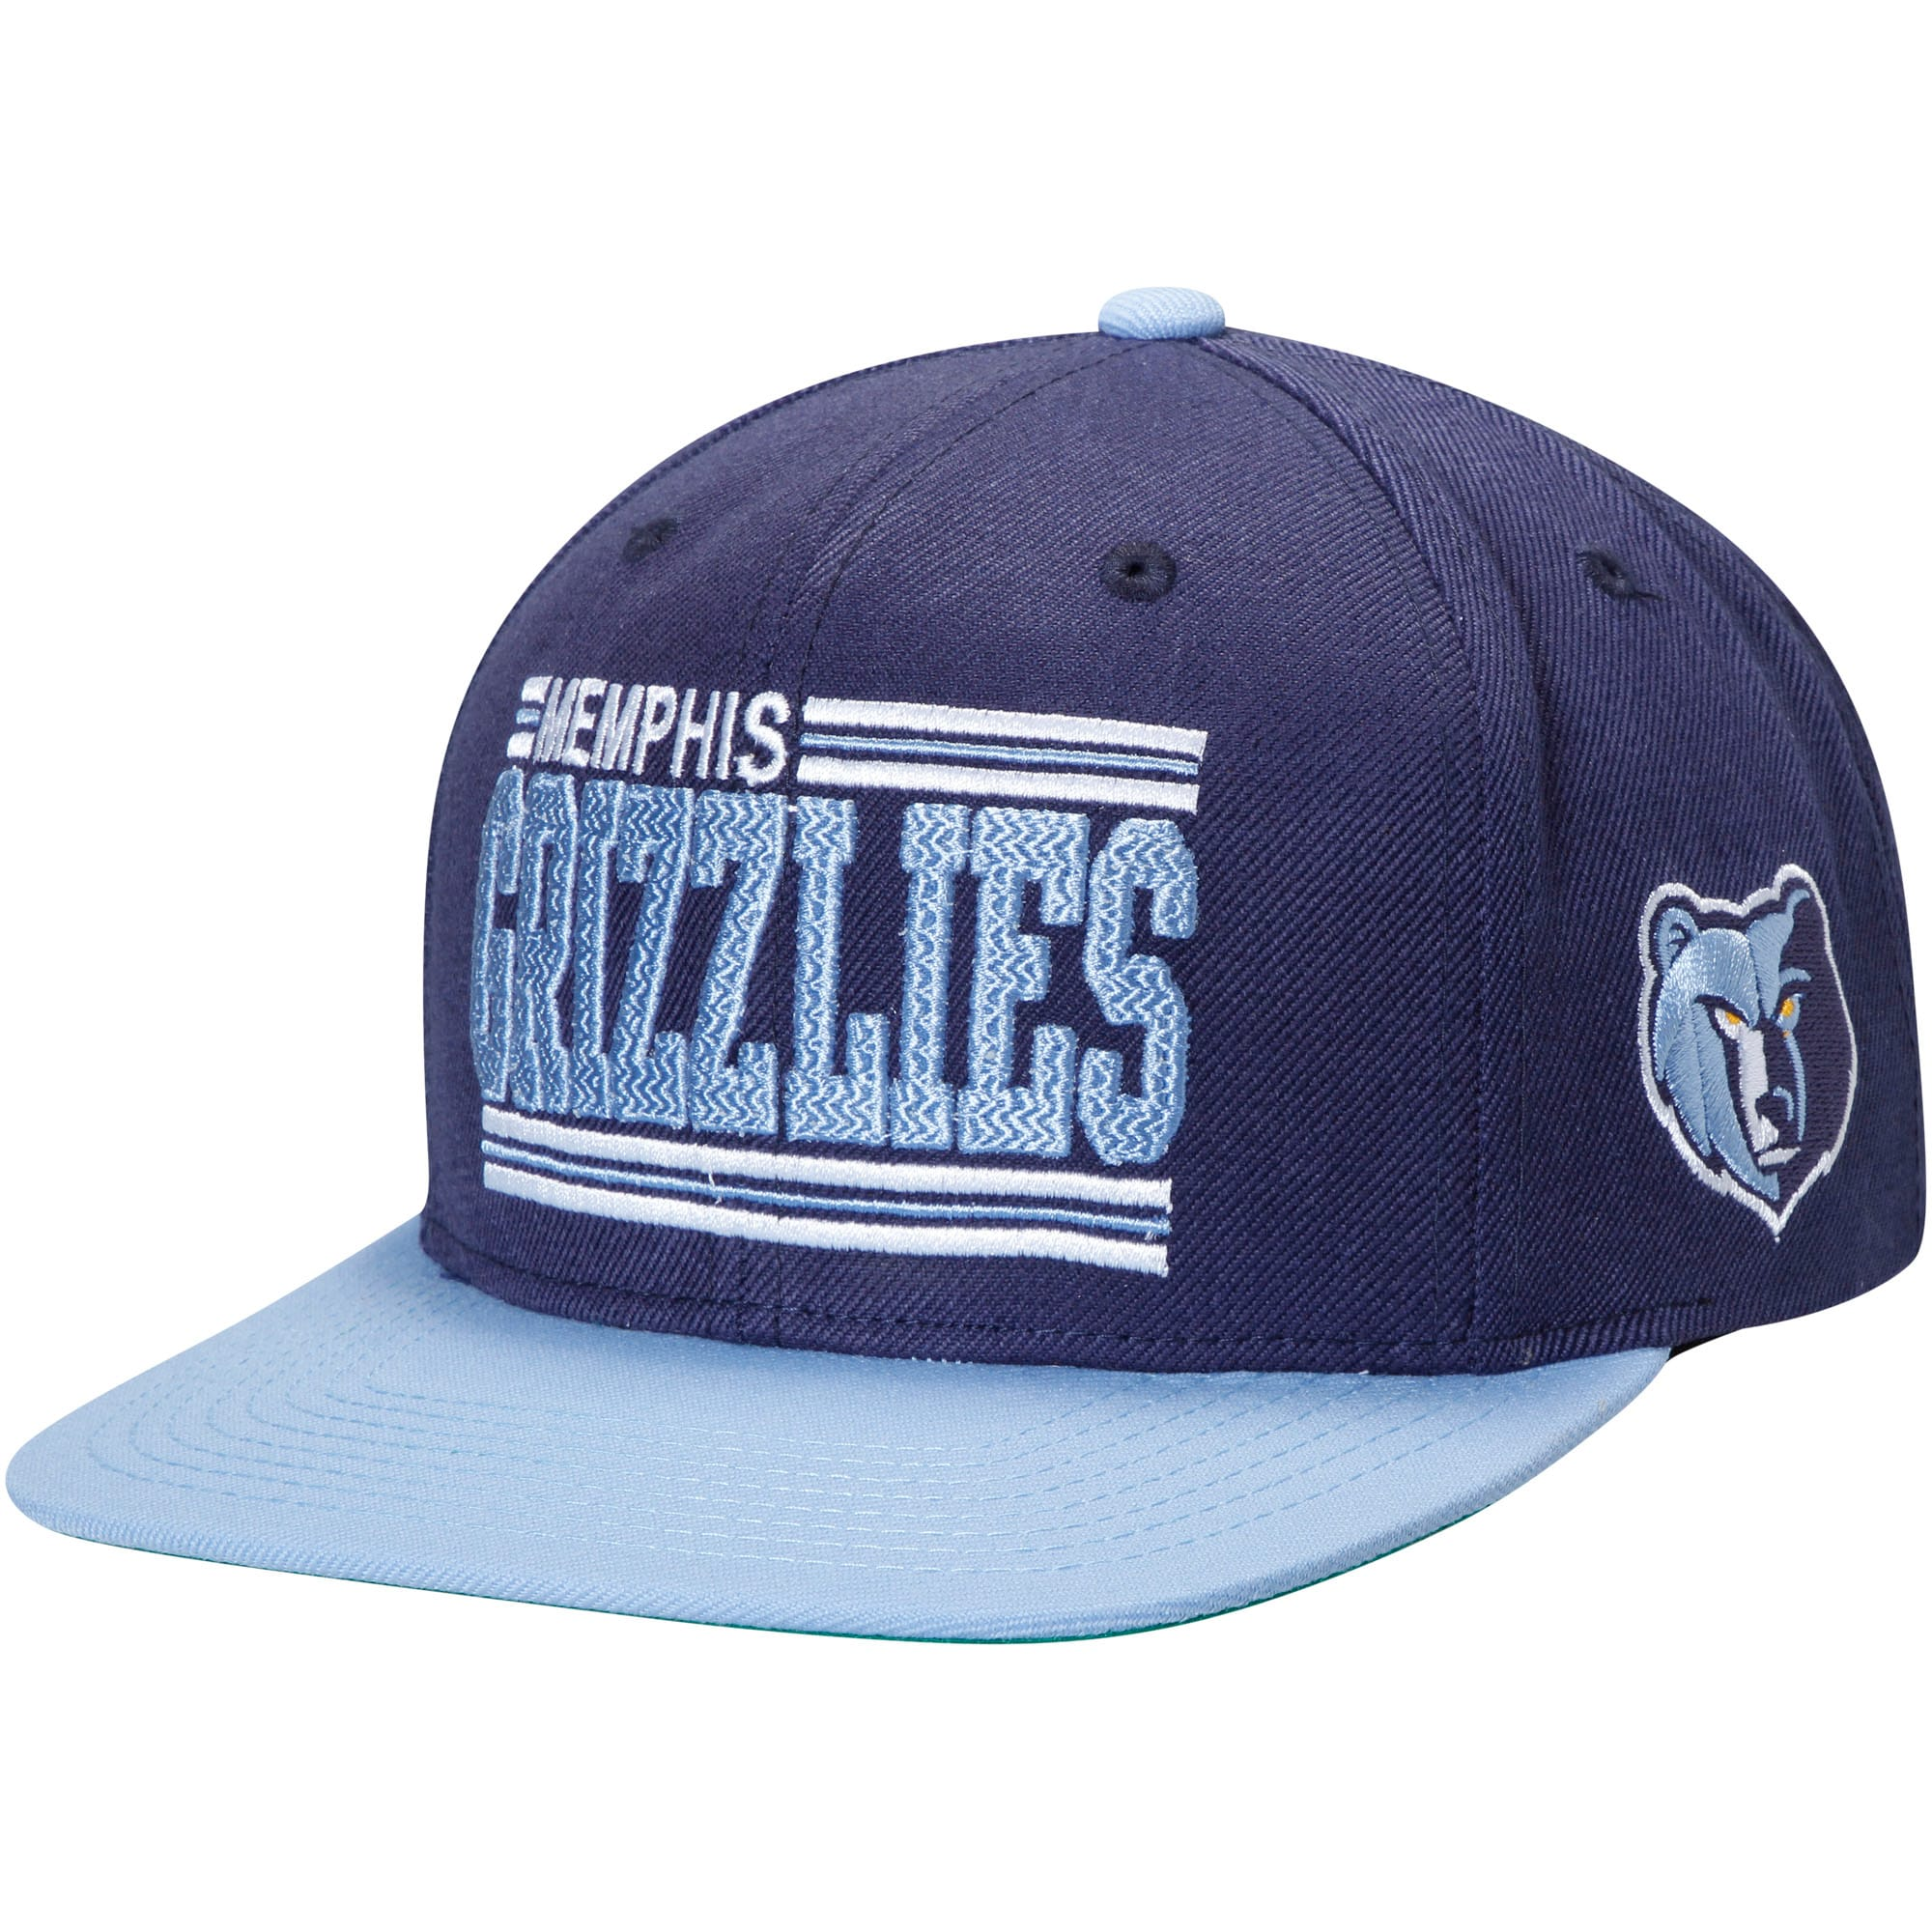 Memphis Grizzlies Mitchell & Ness Between the Lines Adjustable Snapback Hat - Navy